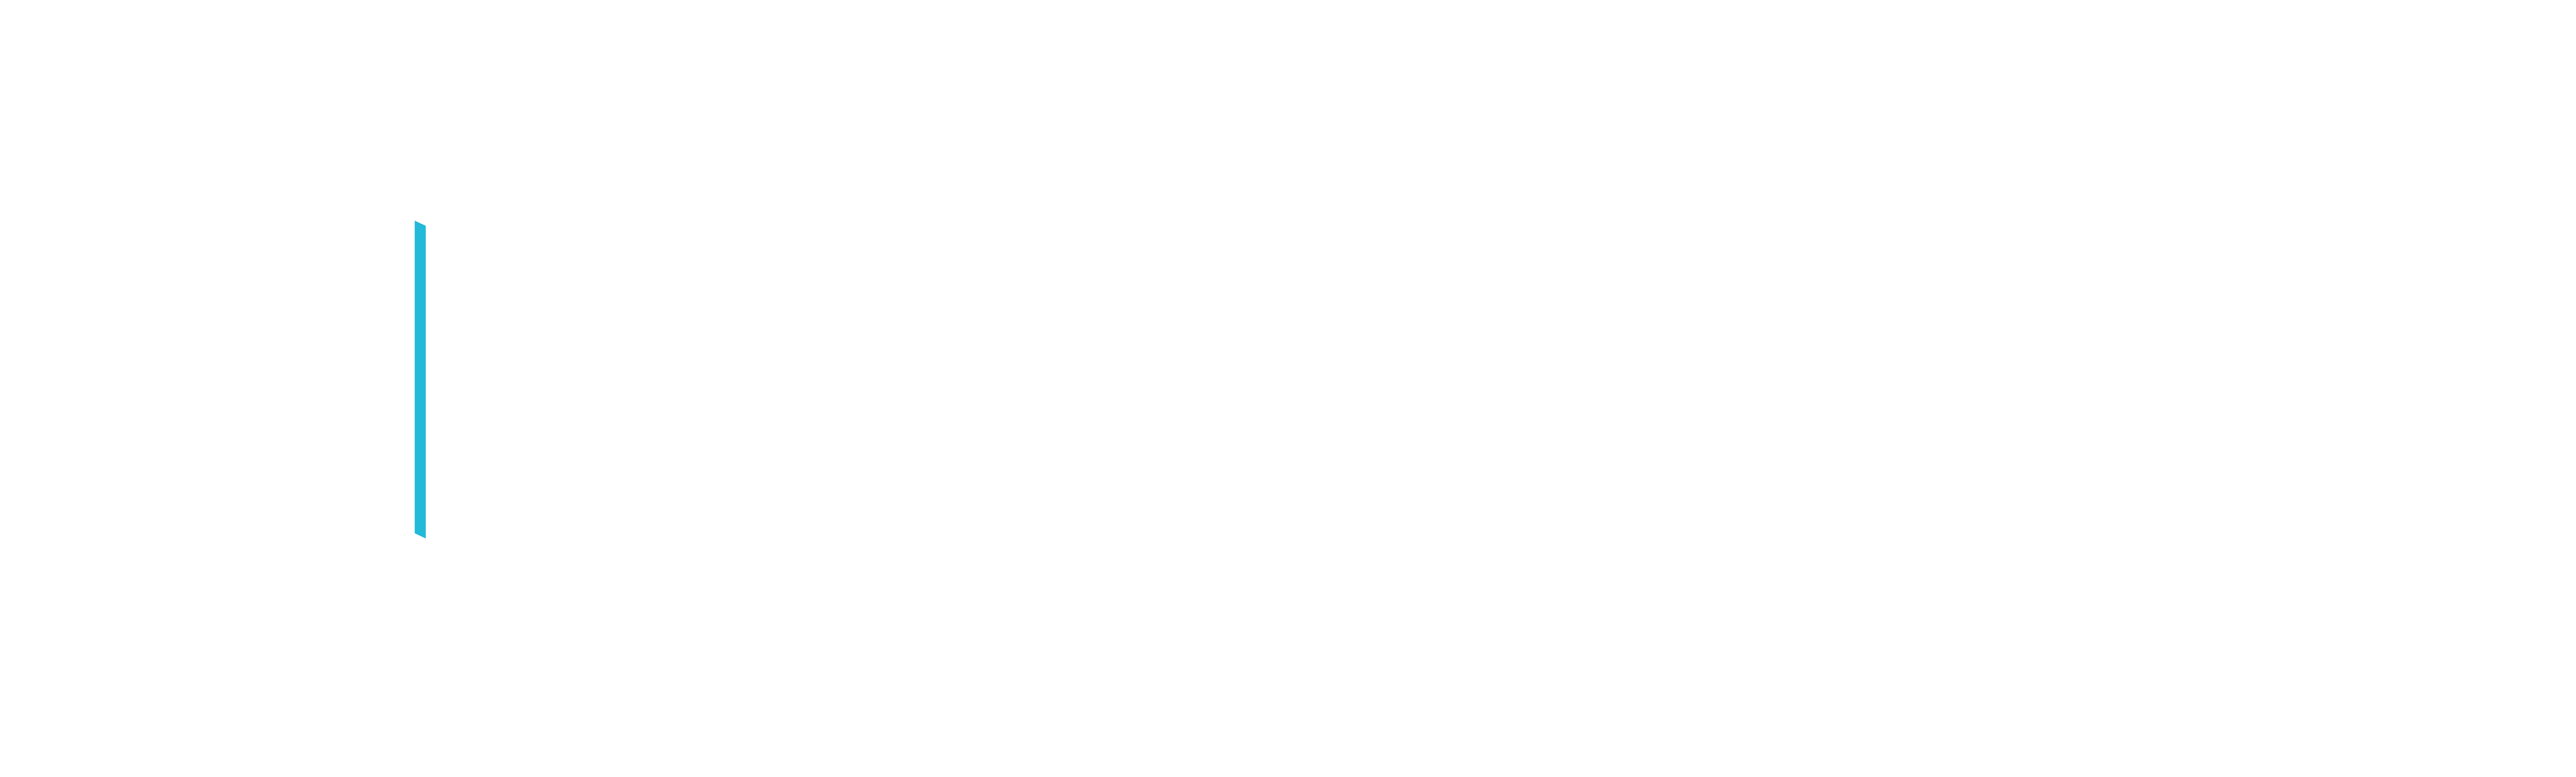 Continuing Education Application and Research Center